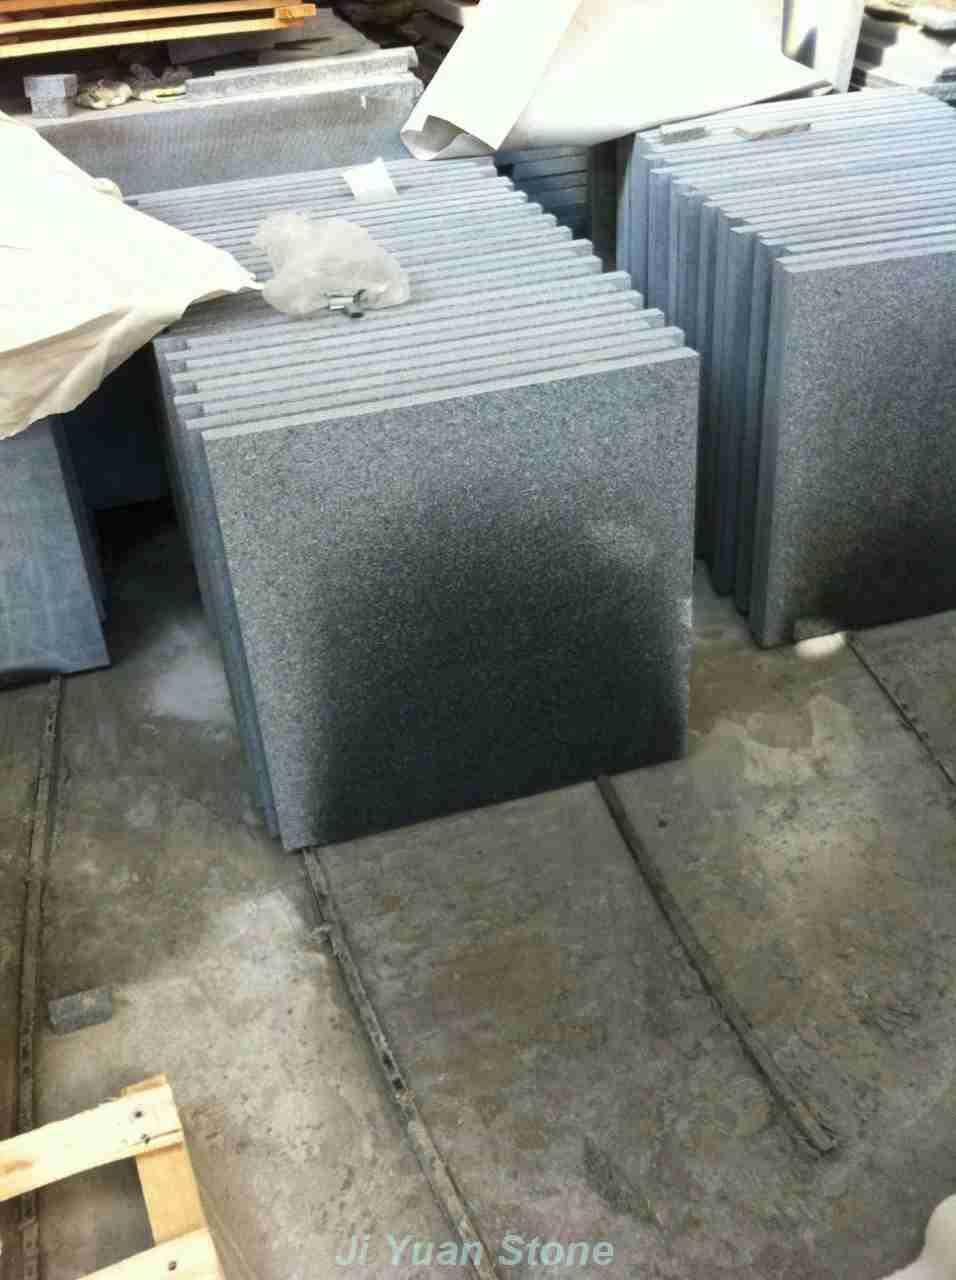 Granite showroom,granite grey,granite colors names,dark brown granite,granite stair treads,granite granite,granite showrooms near me,granite slab colors,granite dealers